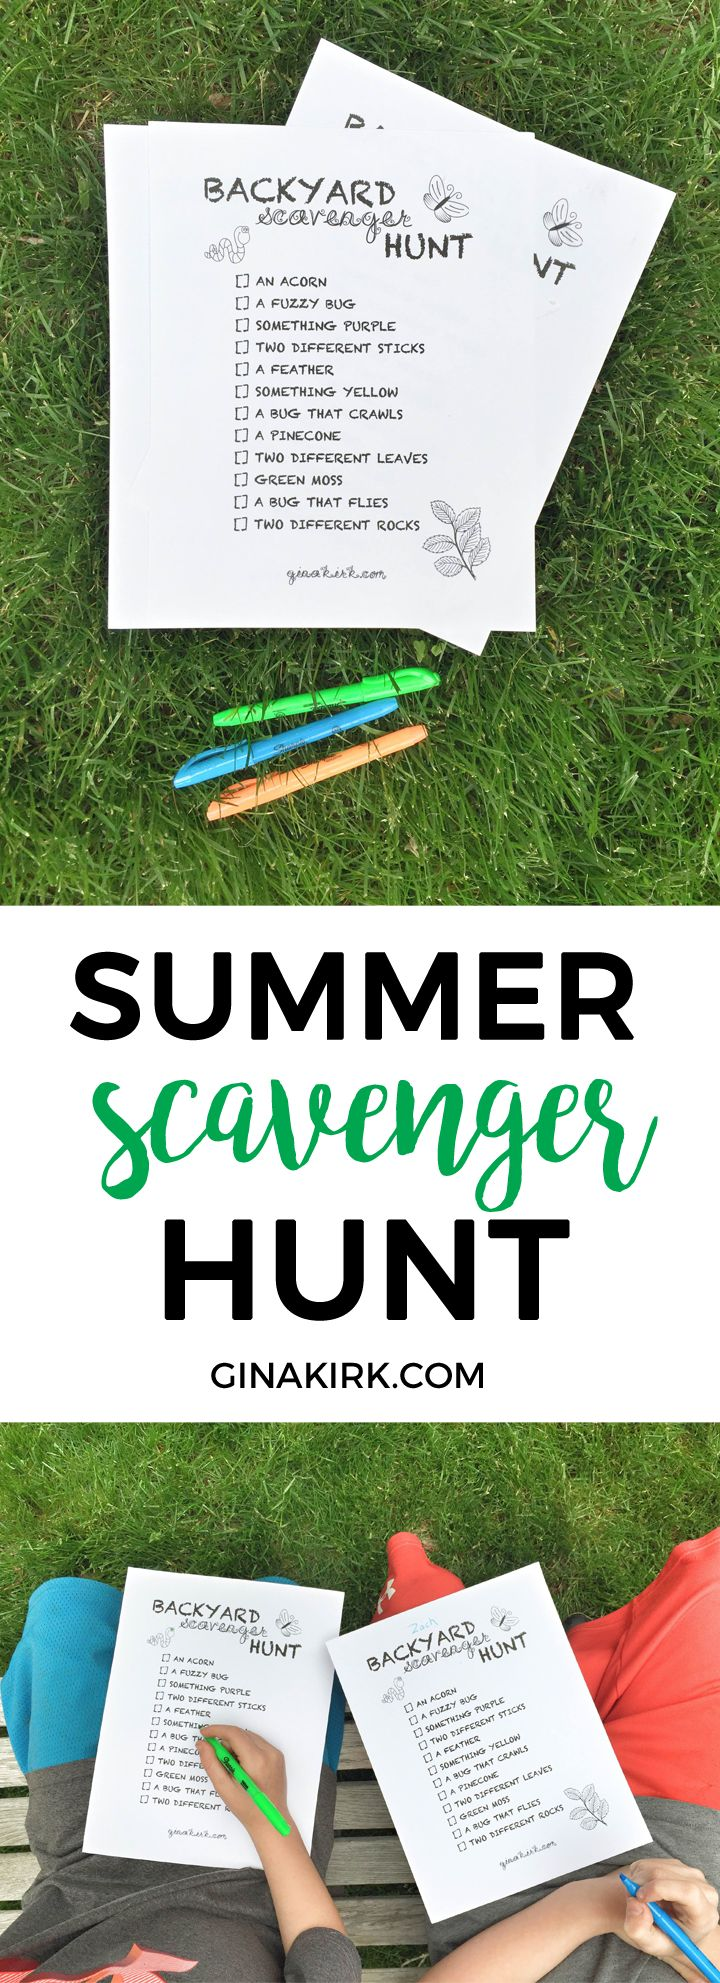 Backyard scavenger hunt | Printable summer nature scavenger hunt | Backyard ice cream party! | GinaKirk.com @ginaekirk #TopYourSummer #SoHoppinGood #ad